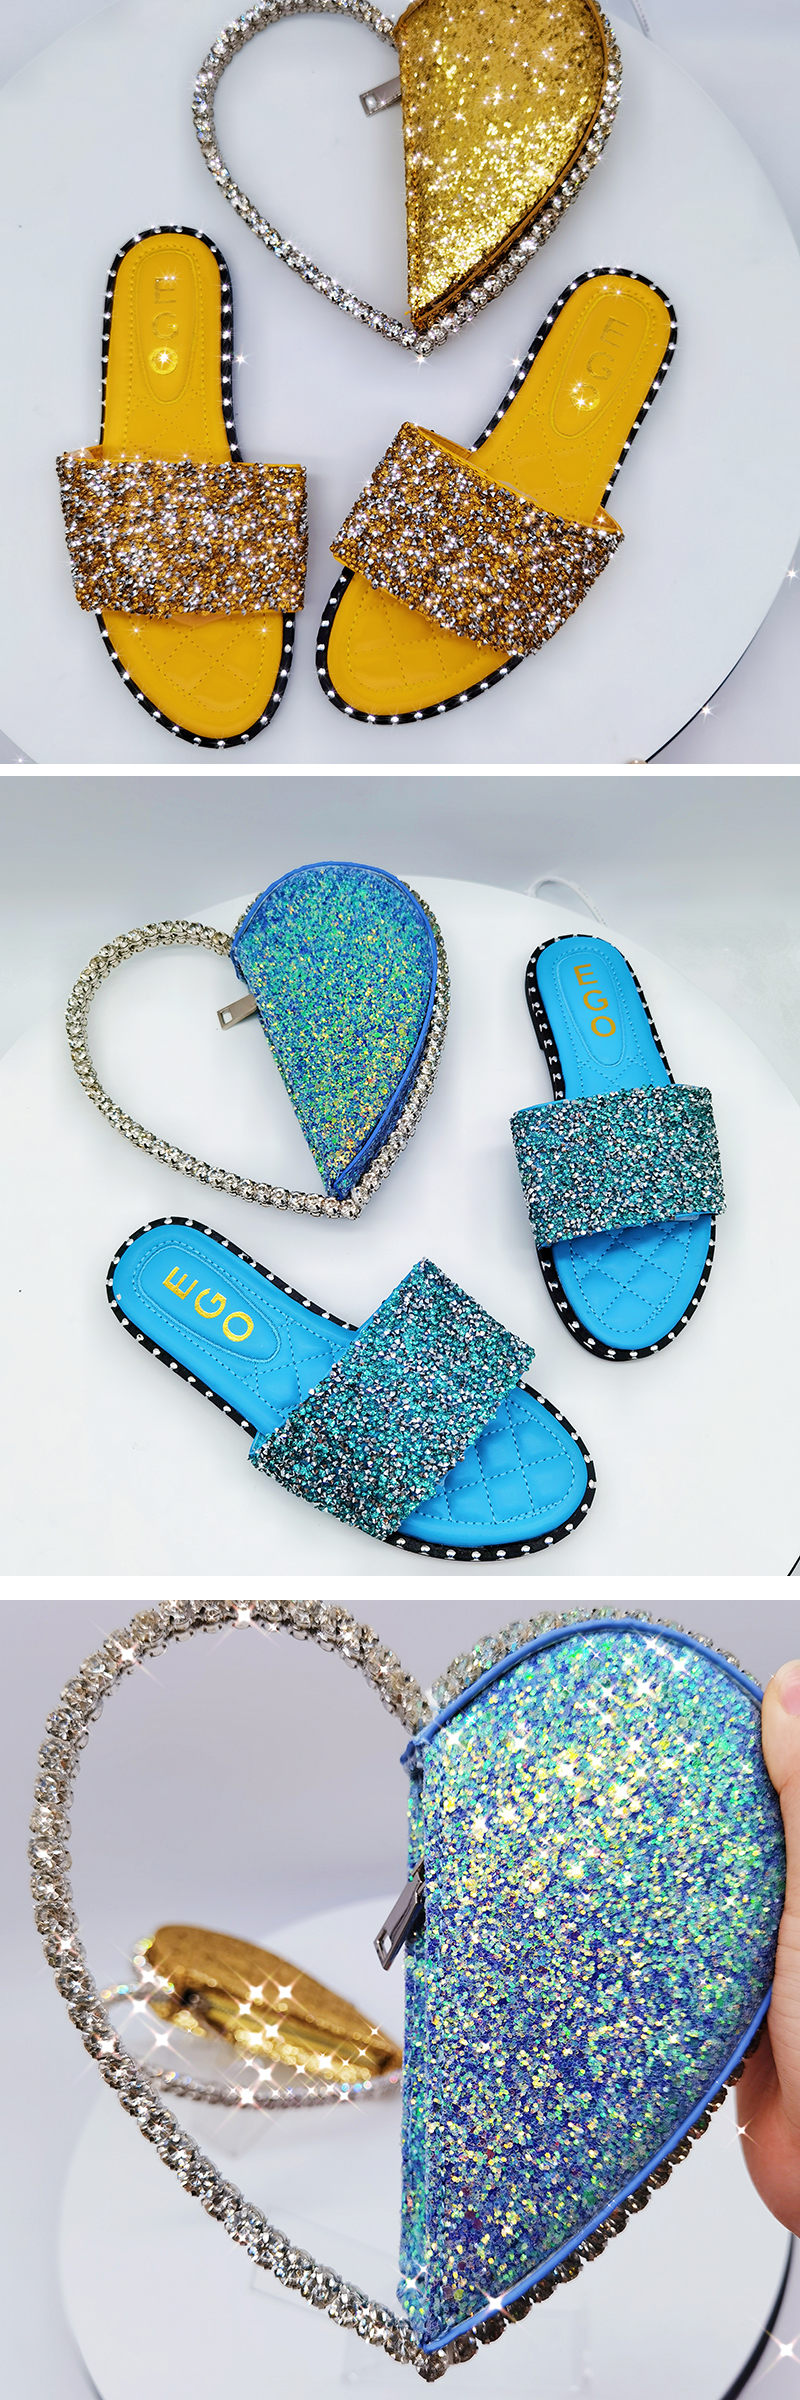 2020 Summer Latest Designs Women Sandals Zapatillas slides women shoes